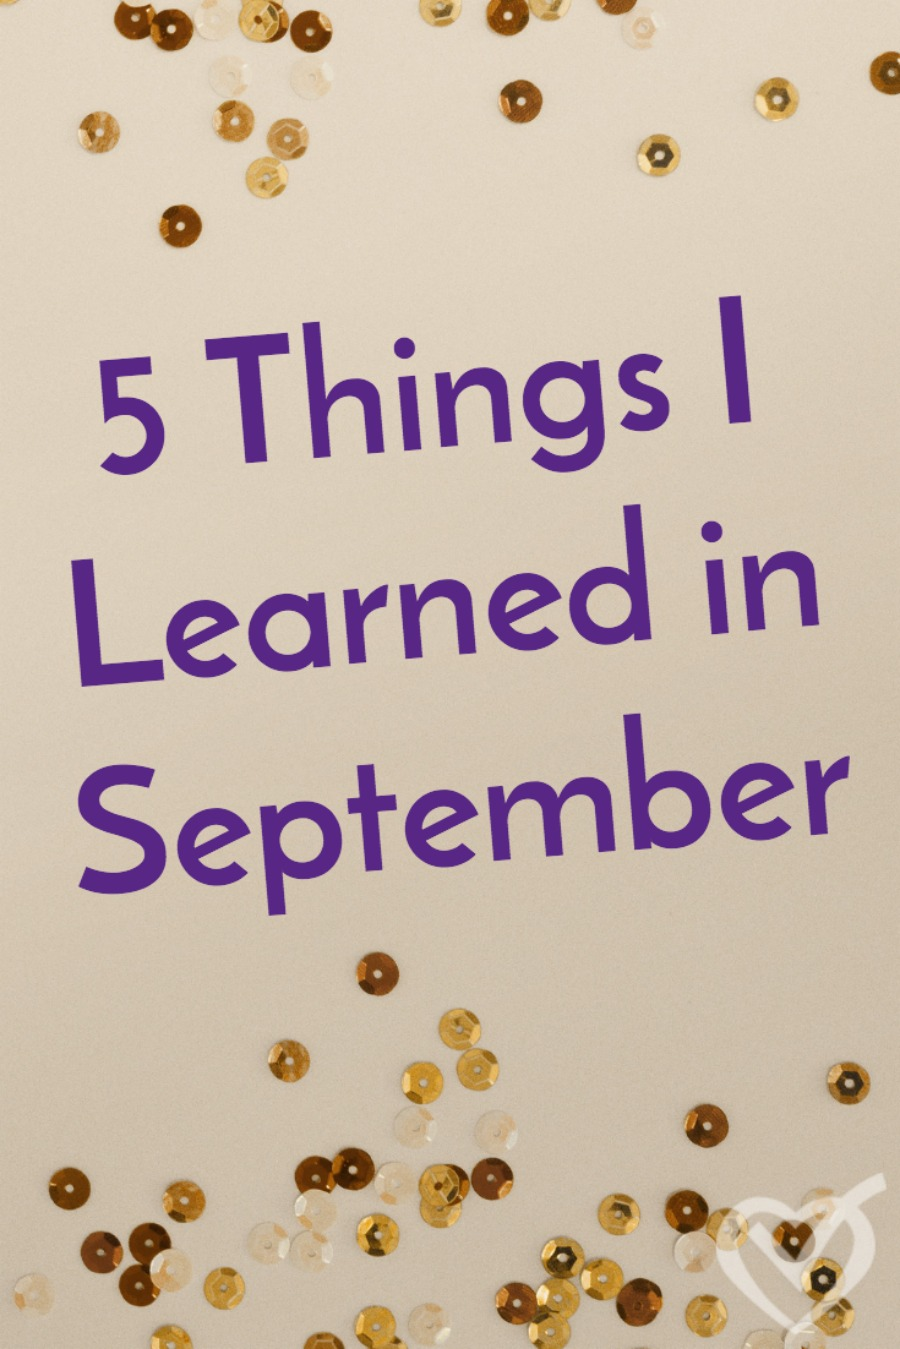 Always keep learning. Here are 5 things I've learned in September - about experienced moms, checking kids' work, drivers' ed, menu planning, and drinking water.